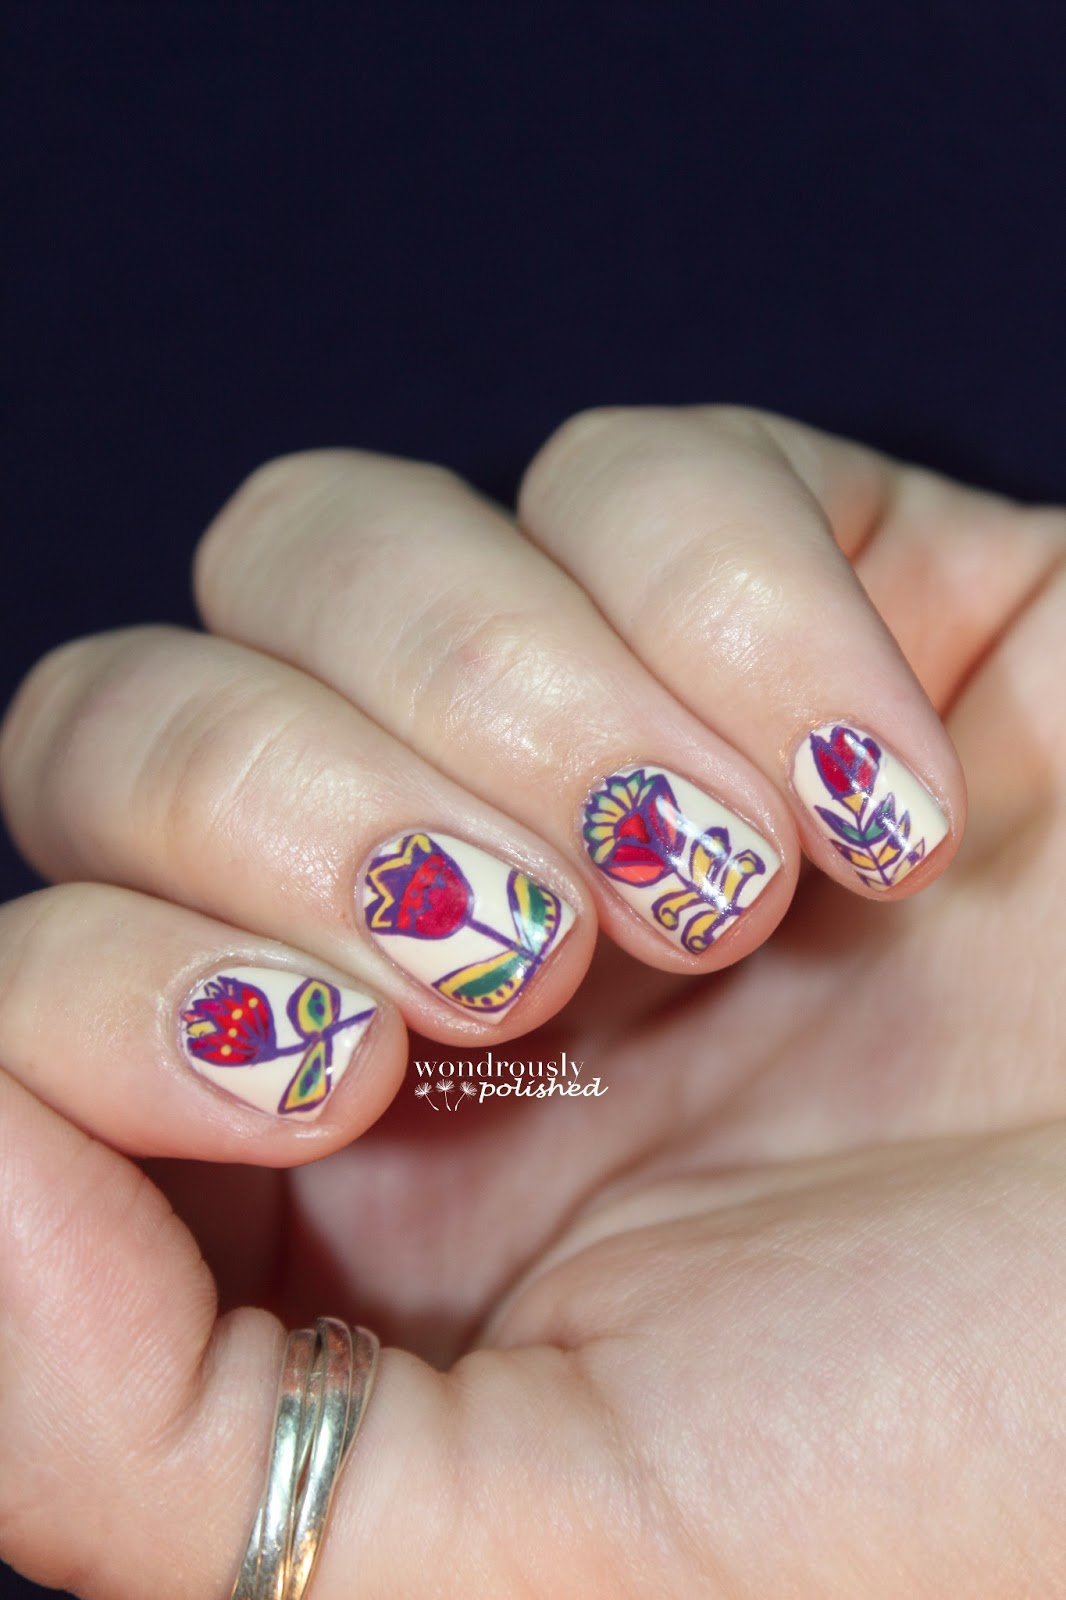 Wondrously Polished February Nail Art Challenge: Wondrously Polished: Funky Floral